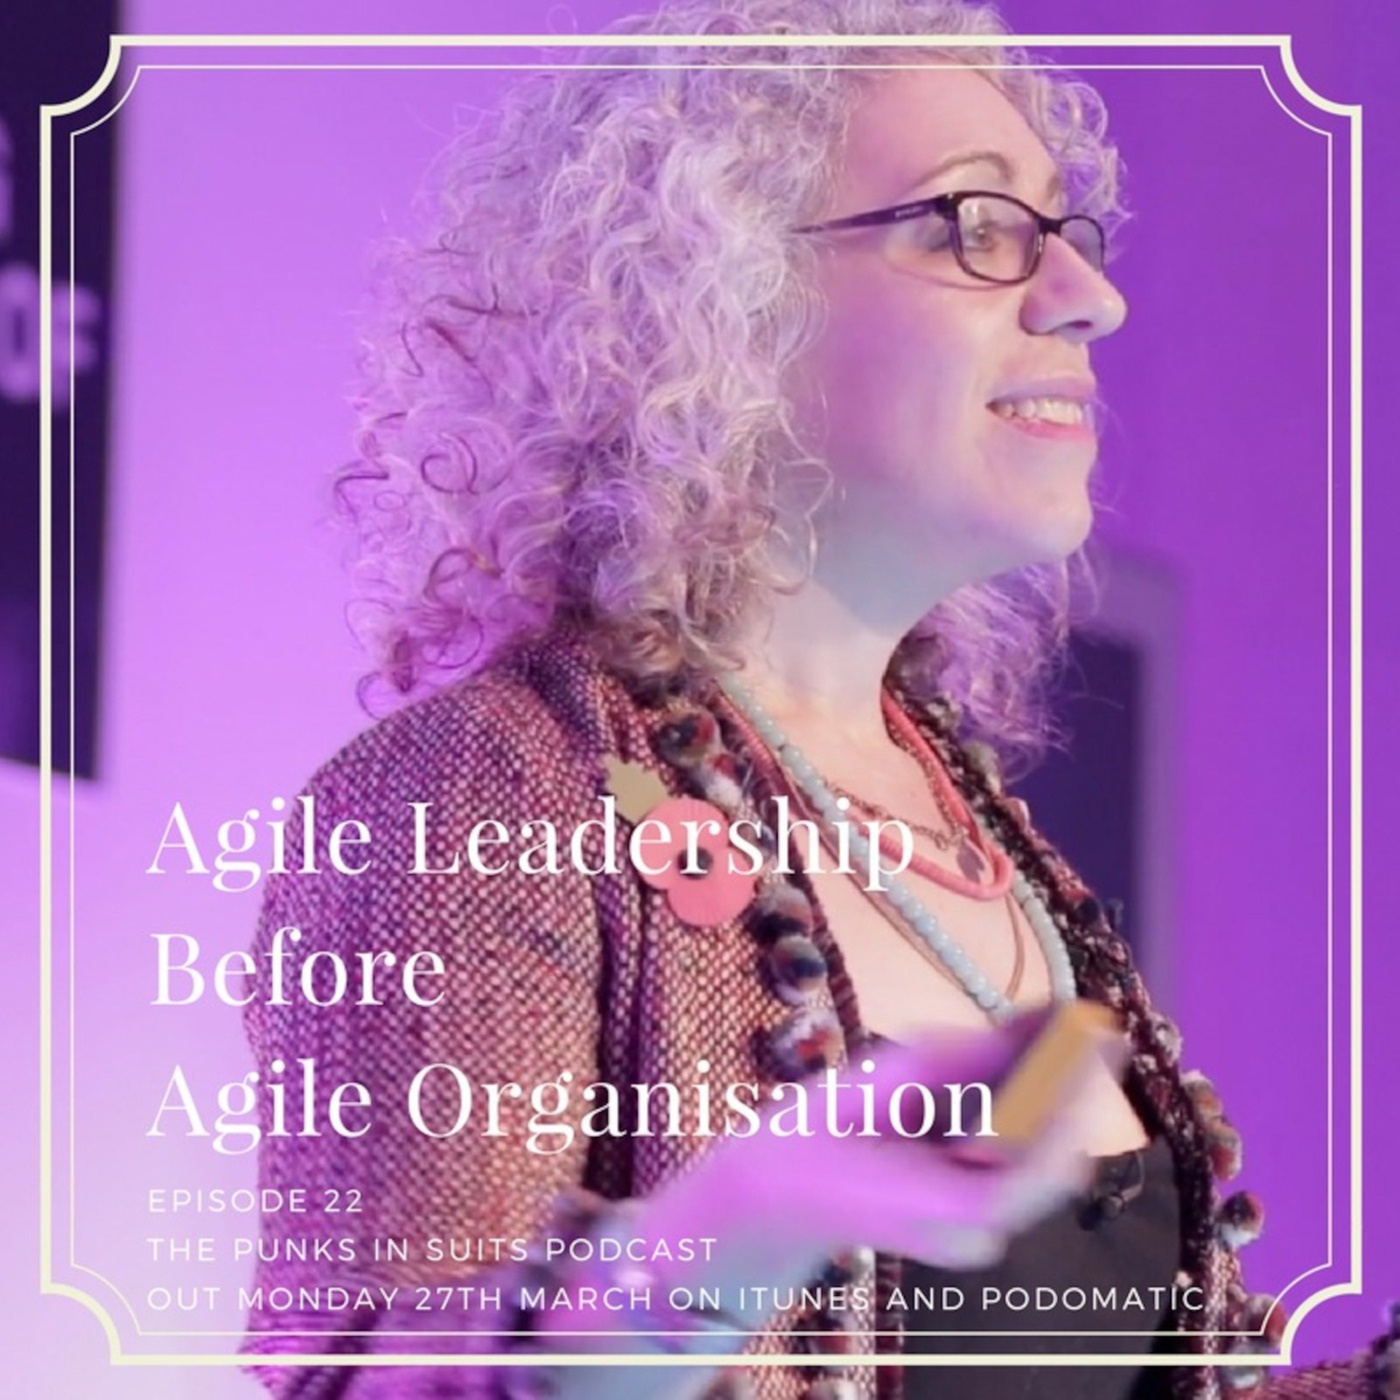 Episode 22: Agile Leadership Before Agile Organisation